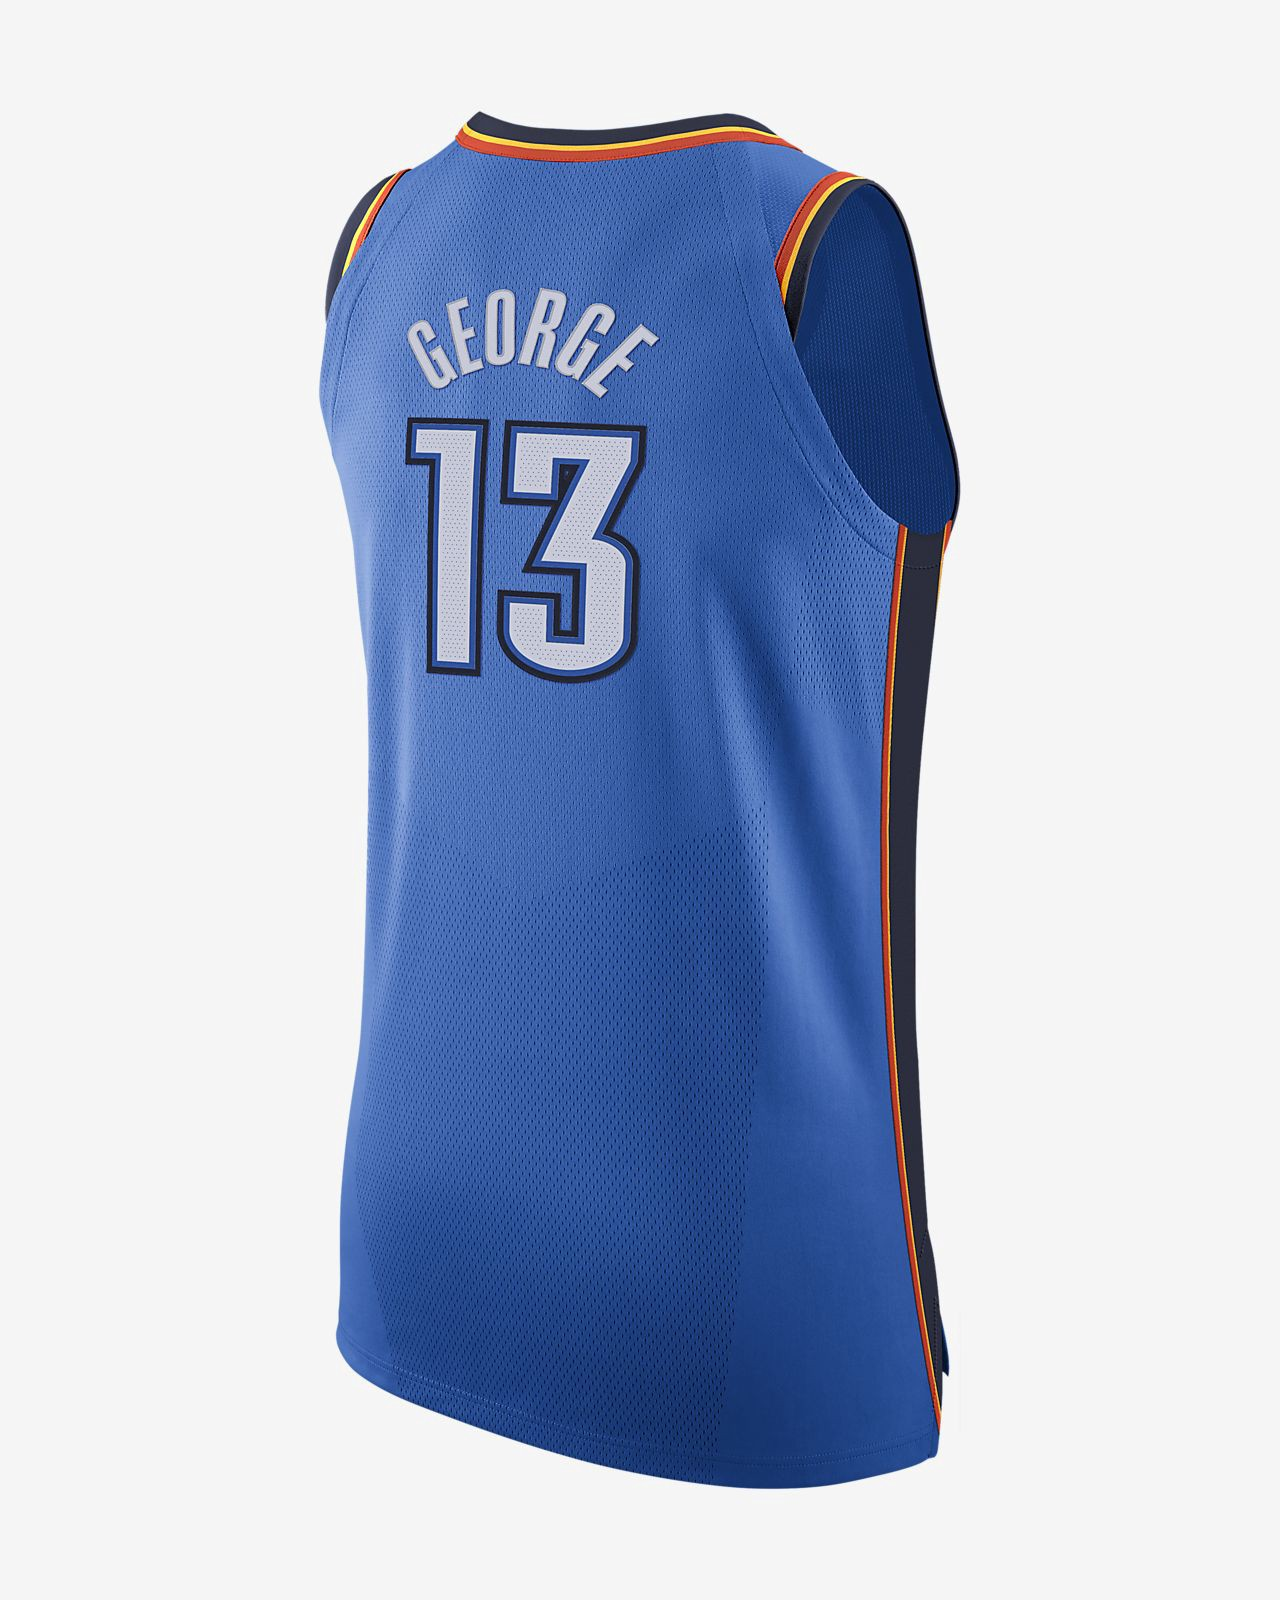 8892b474 Nike Paul George Icon Edition Authentic Jersey (Oklahoma City Thunder) Men's  Nba Connected - M (44) Blue